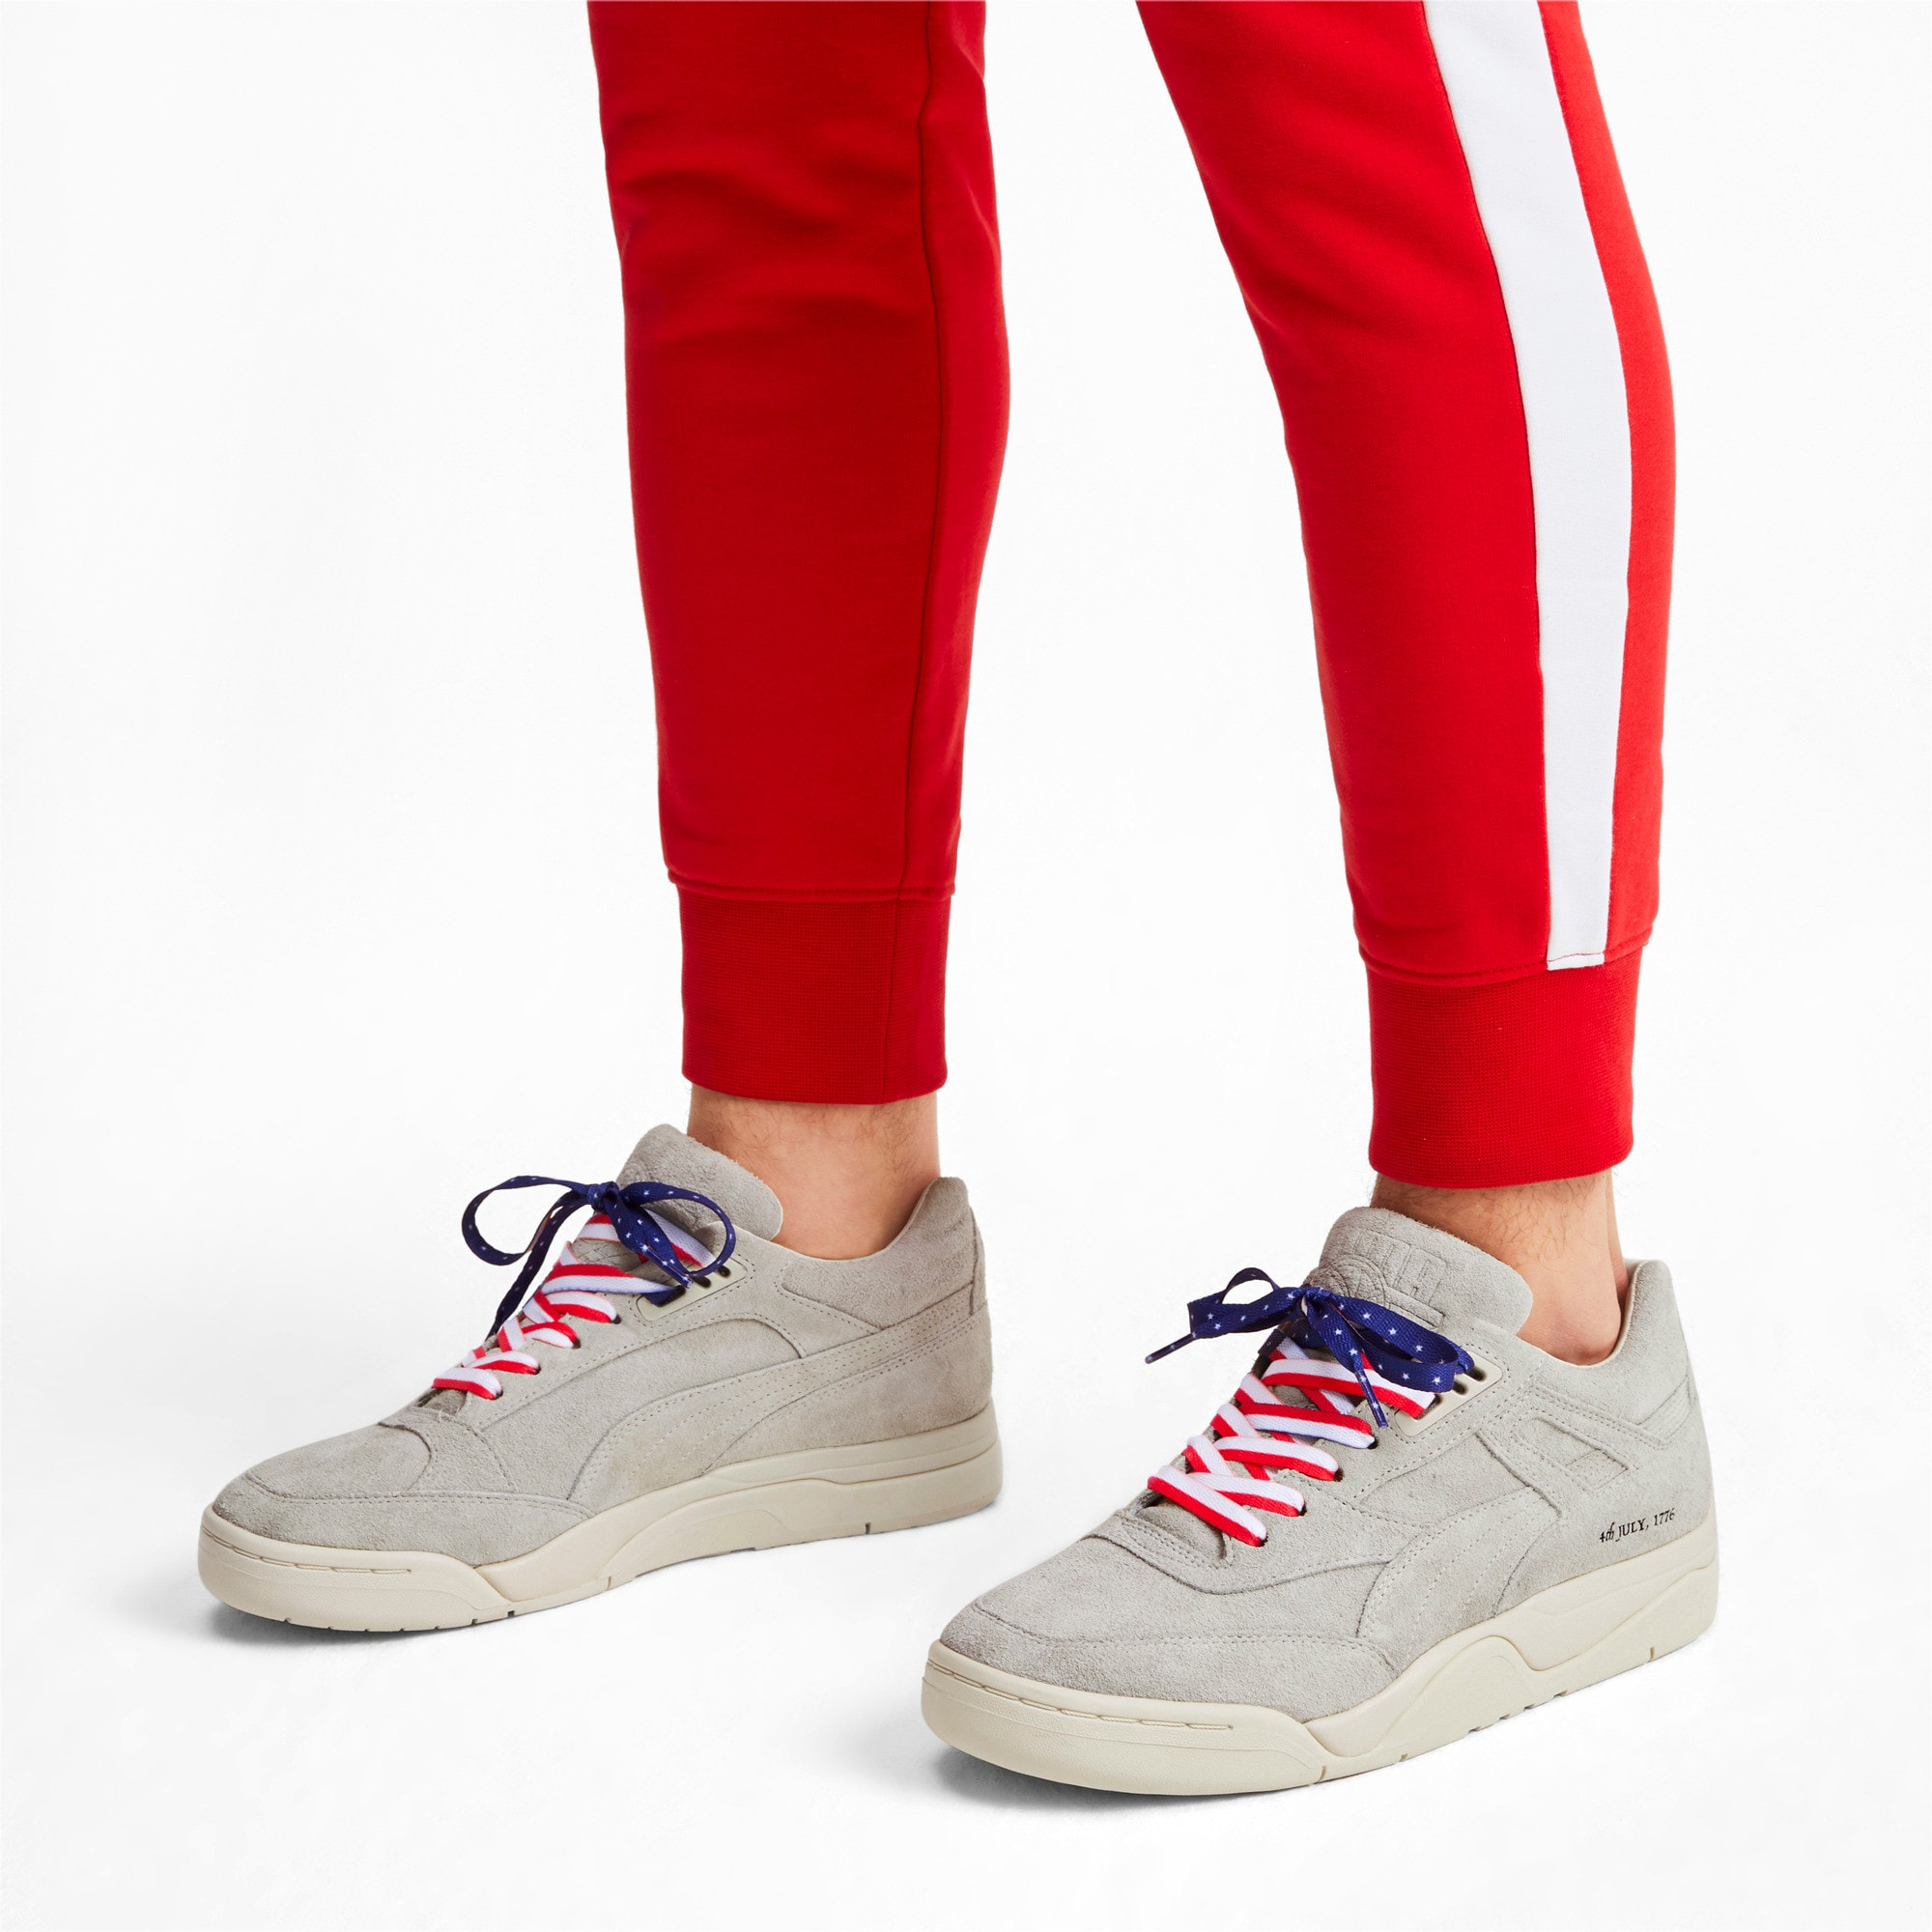 Thumbnail 2 of Palace Guard 4th of July Trainers, Whisper White-Puma Black, medium-IND